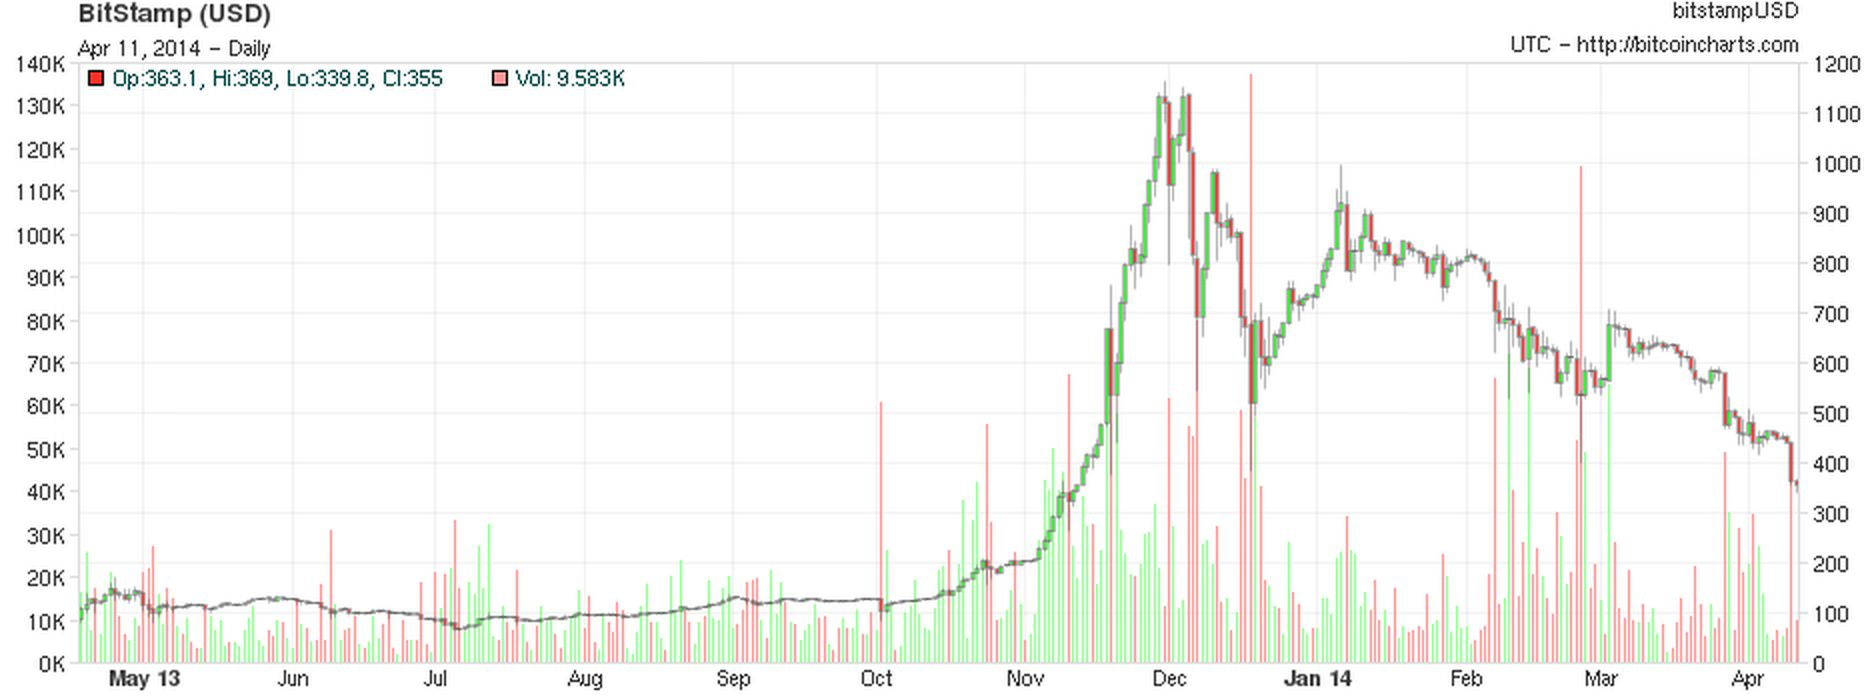 One year price history of bitcoin. Source: Bitcoin Charts